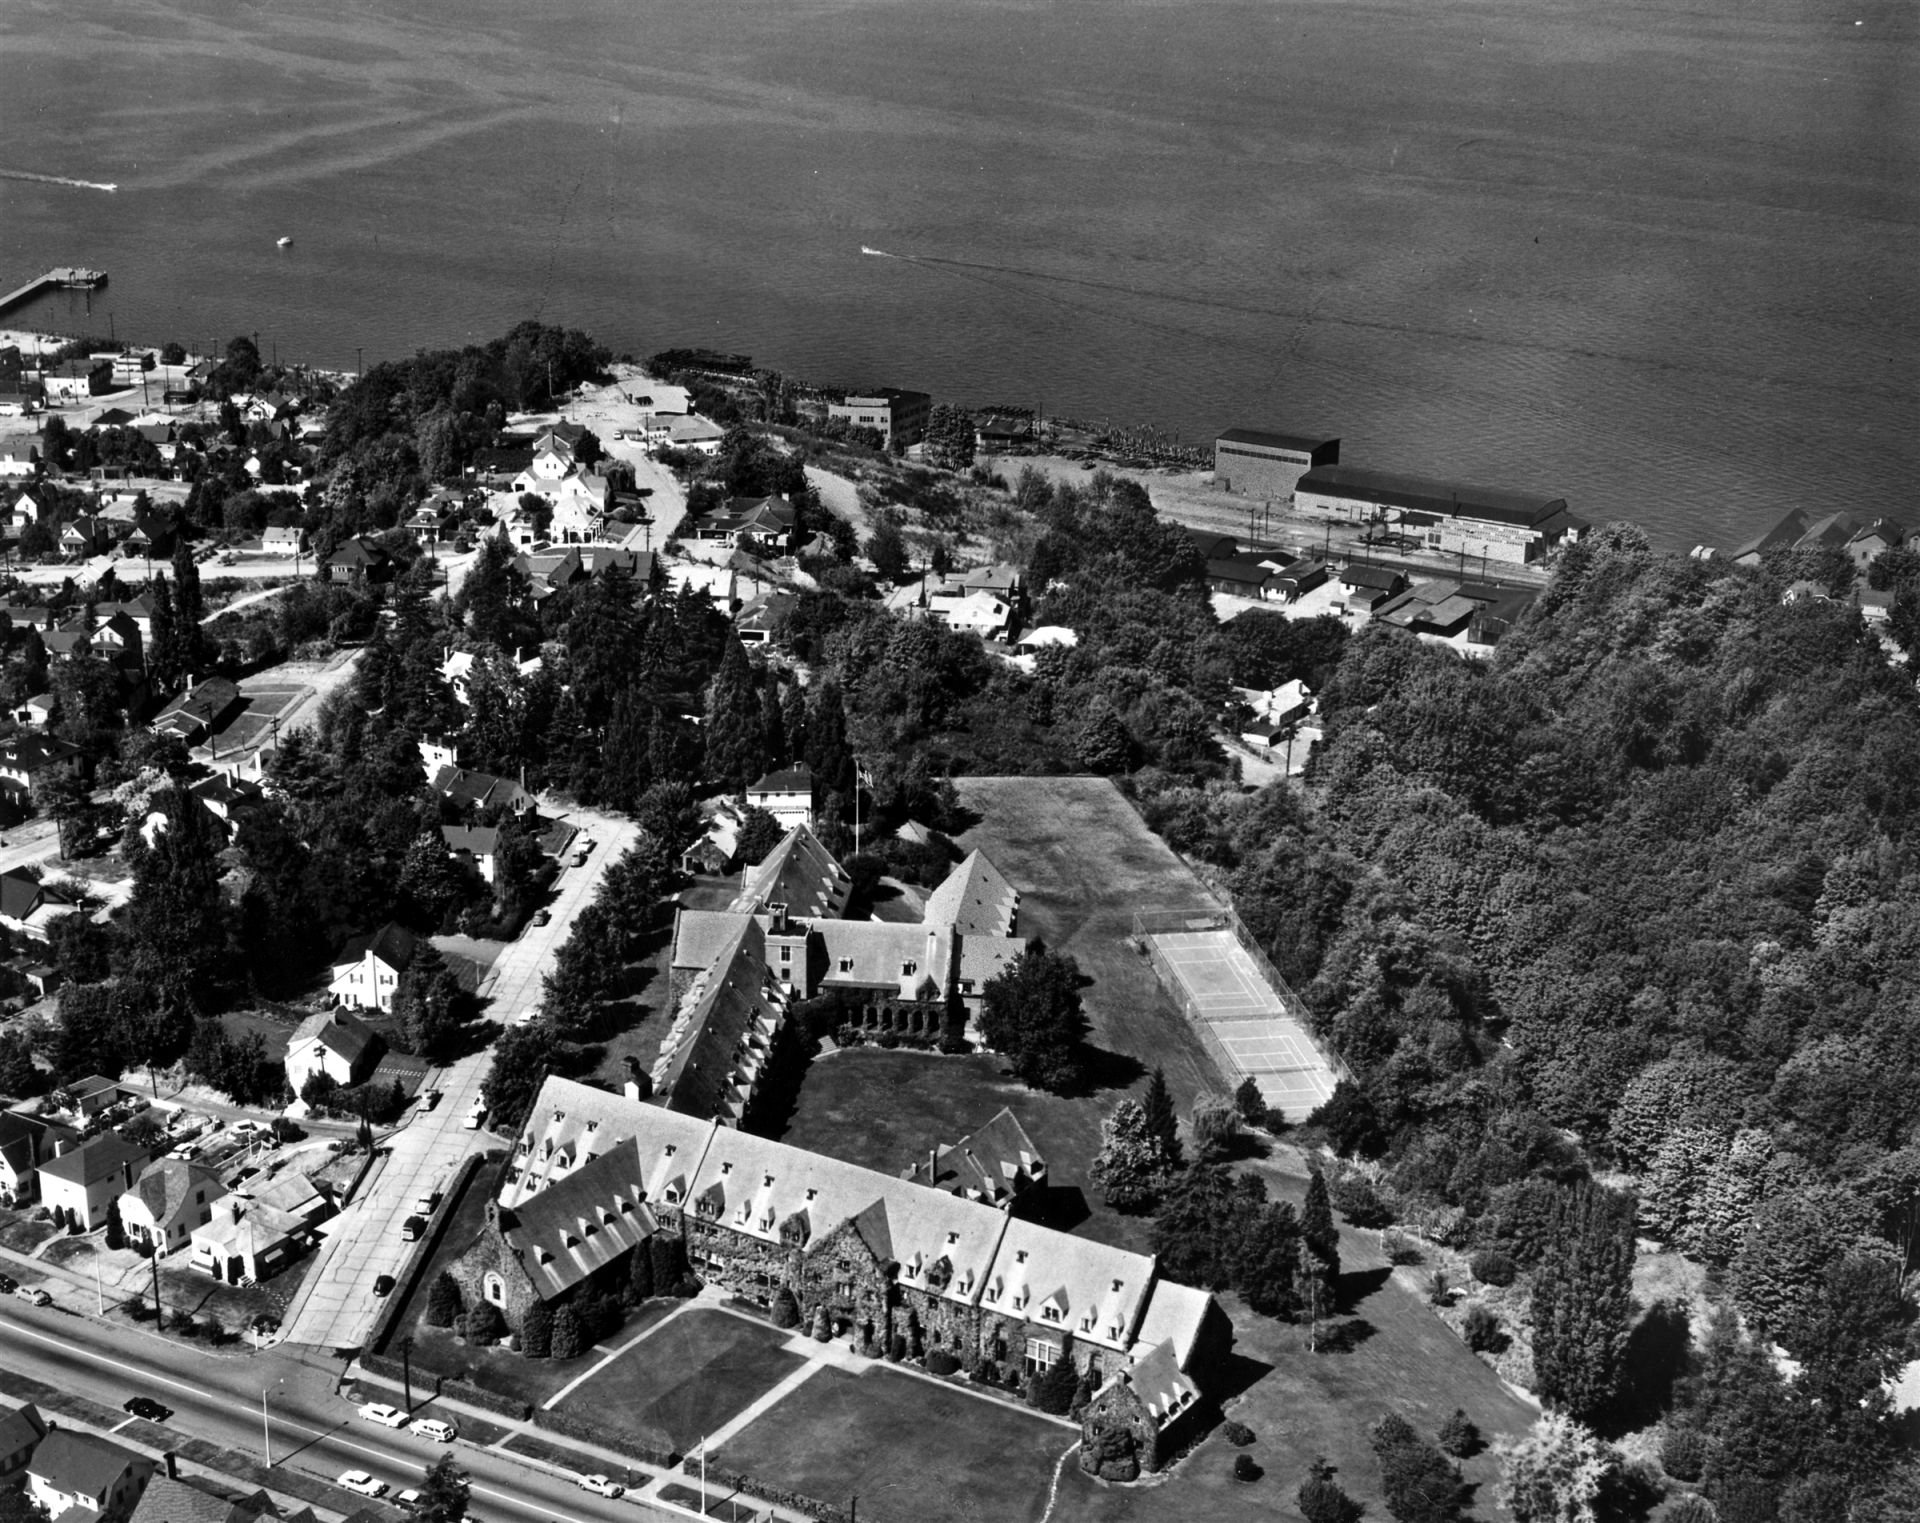 Campus overhead shot in 1957